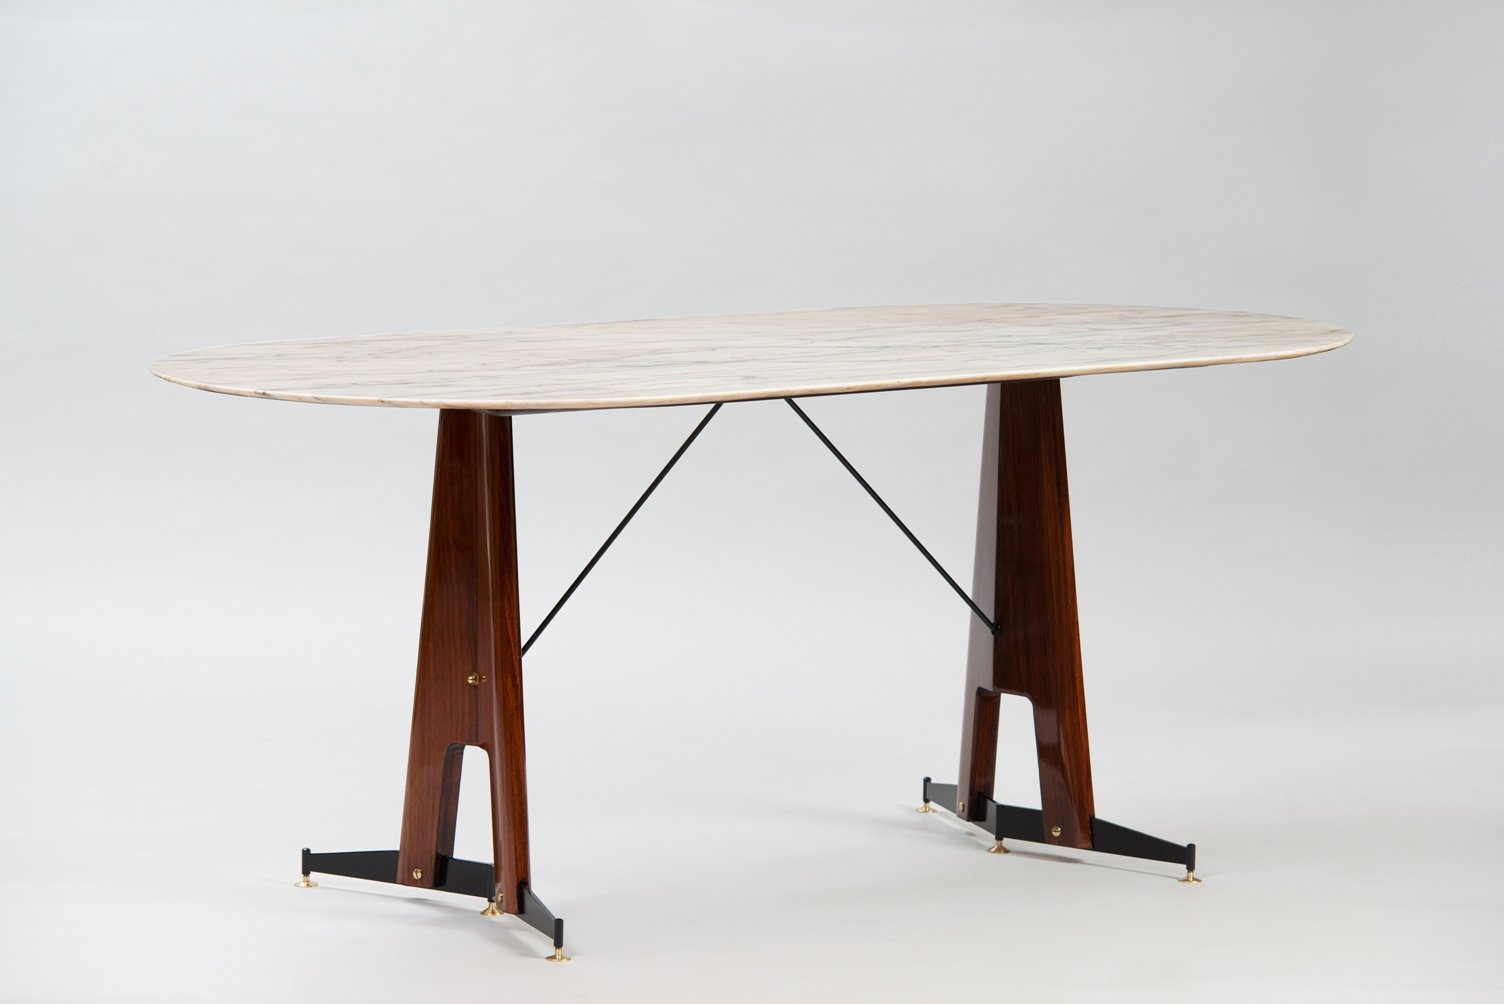 Table salle a manger marbre design for Table salle a manger en marbre design